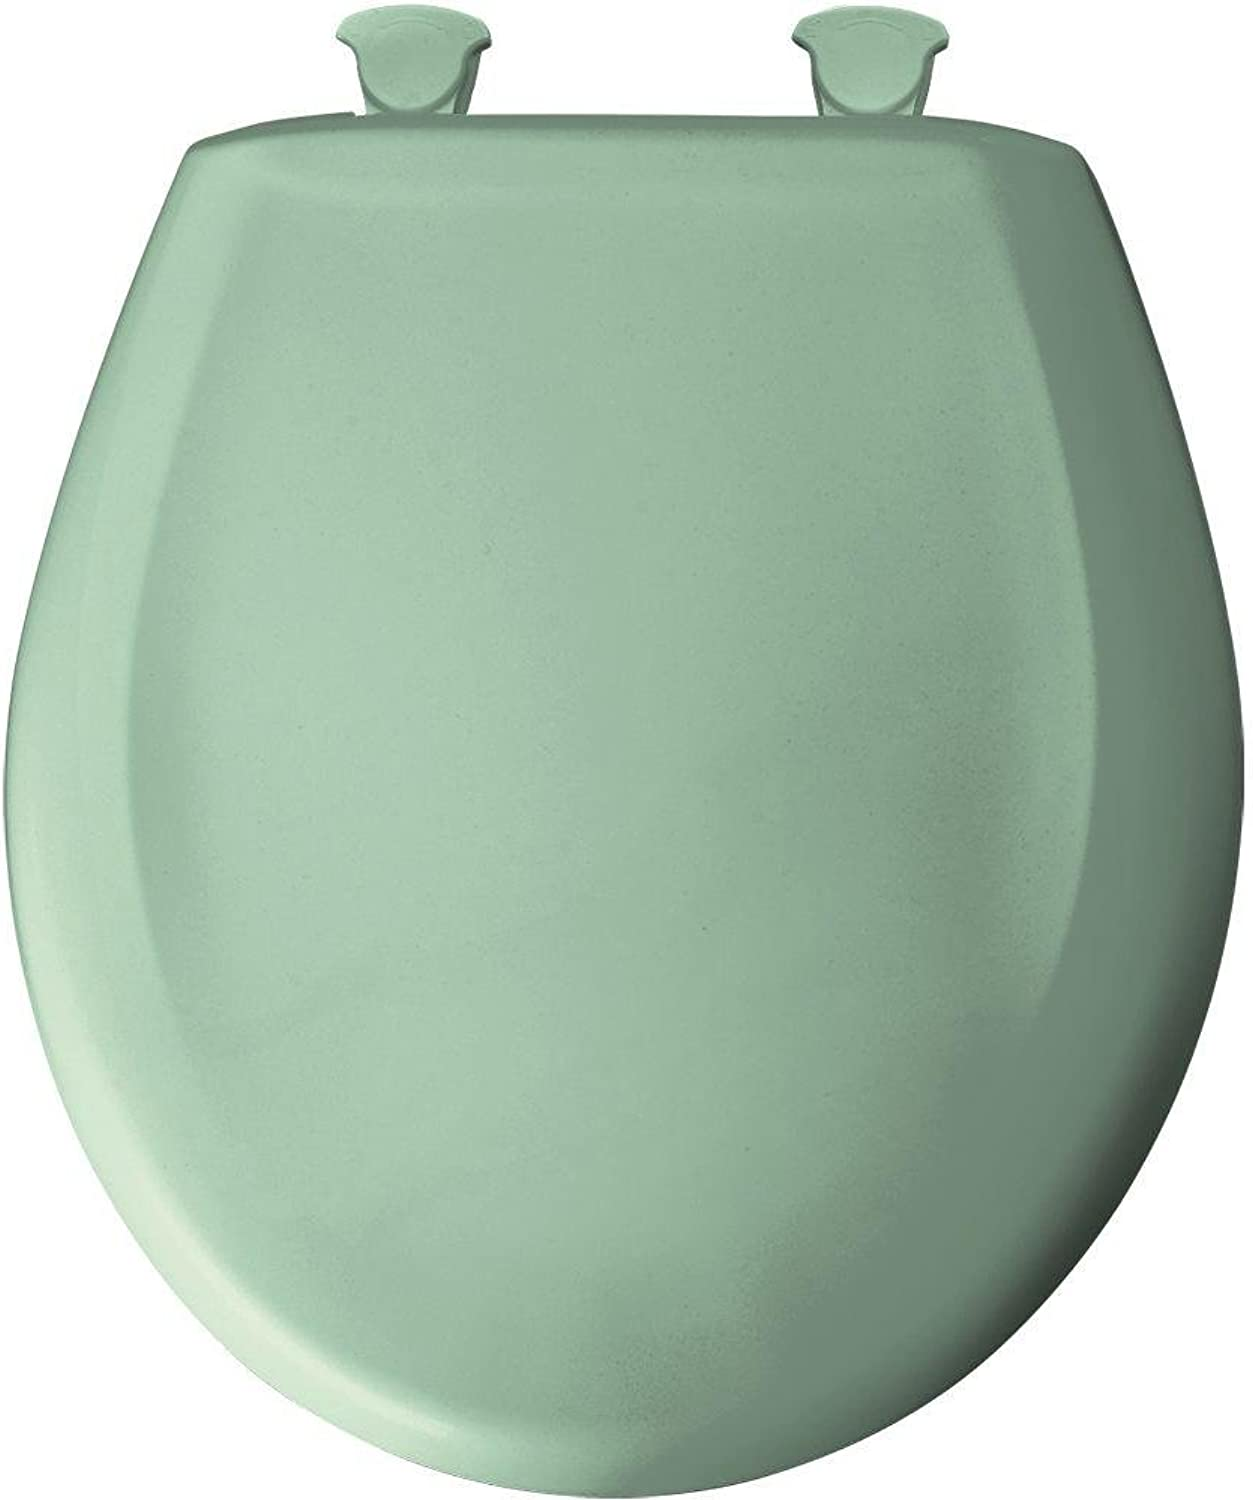 Church Seat 200SLOWT 035 Whisper Close Round Closed Front Toilet Seat in Sea Green